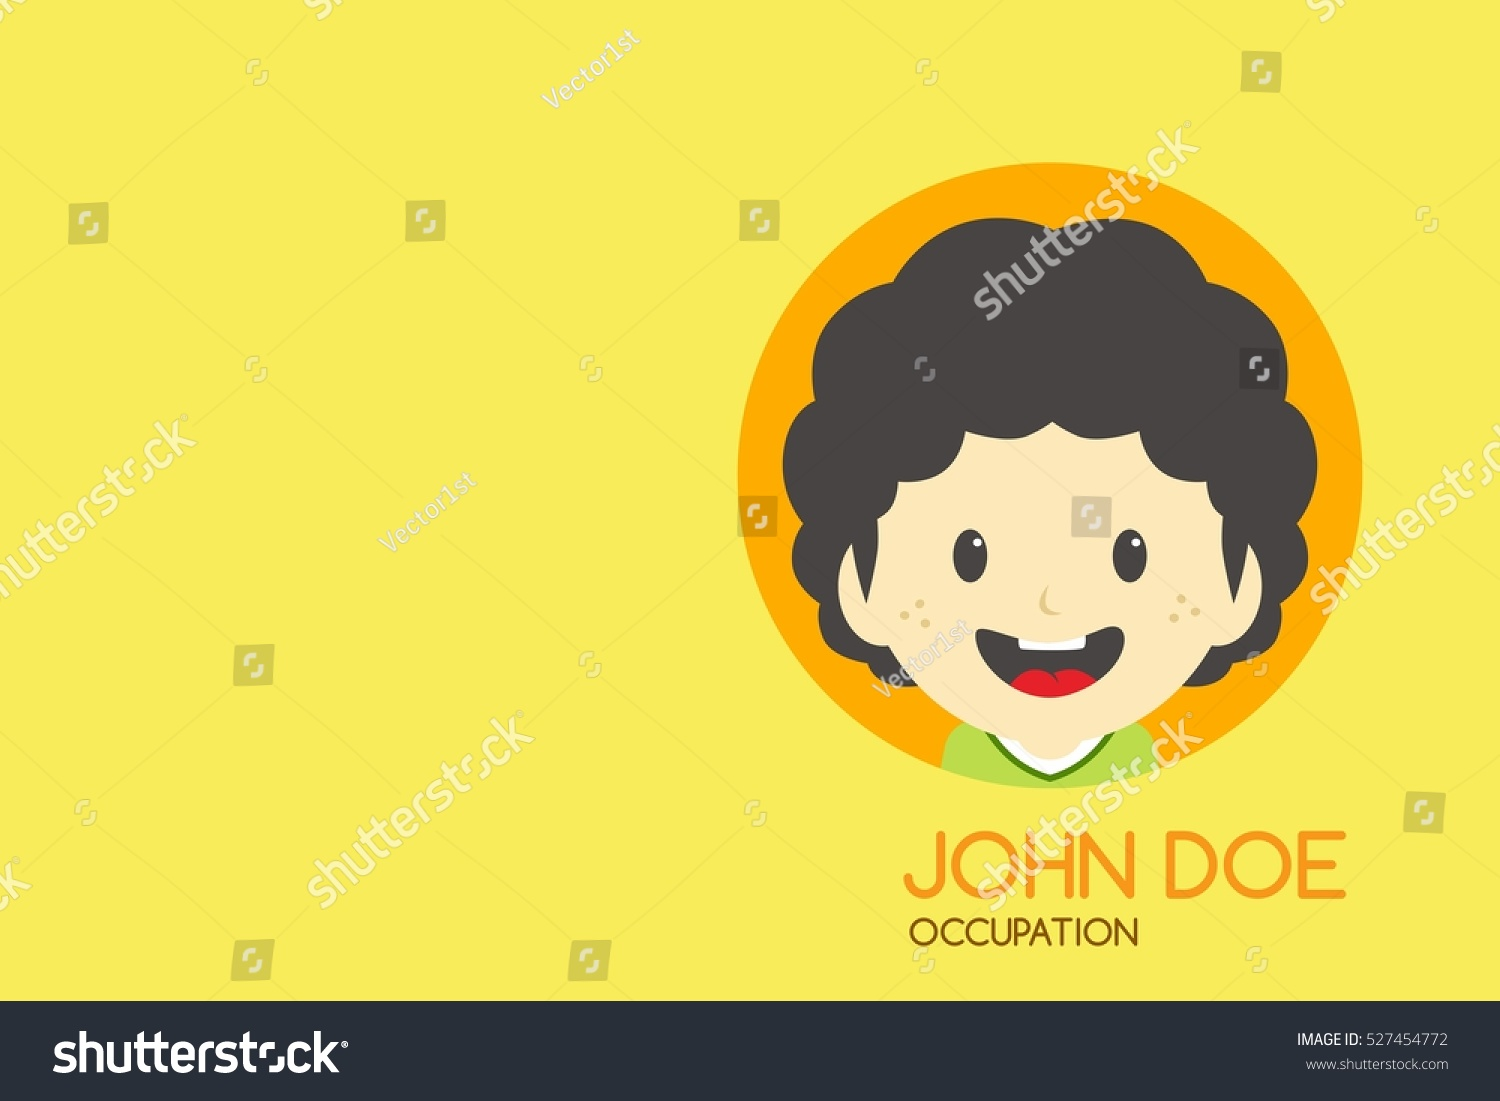 Man Cartoon Theme Business Card Stock Illustration 527454772 ...